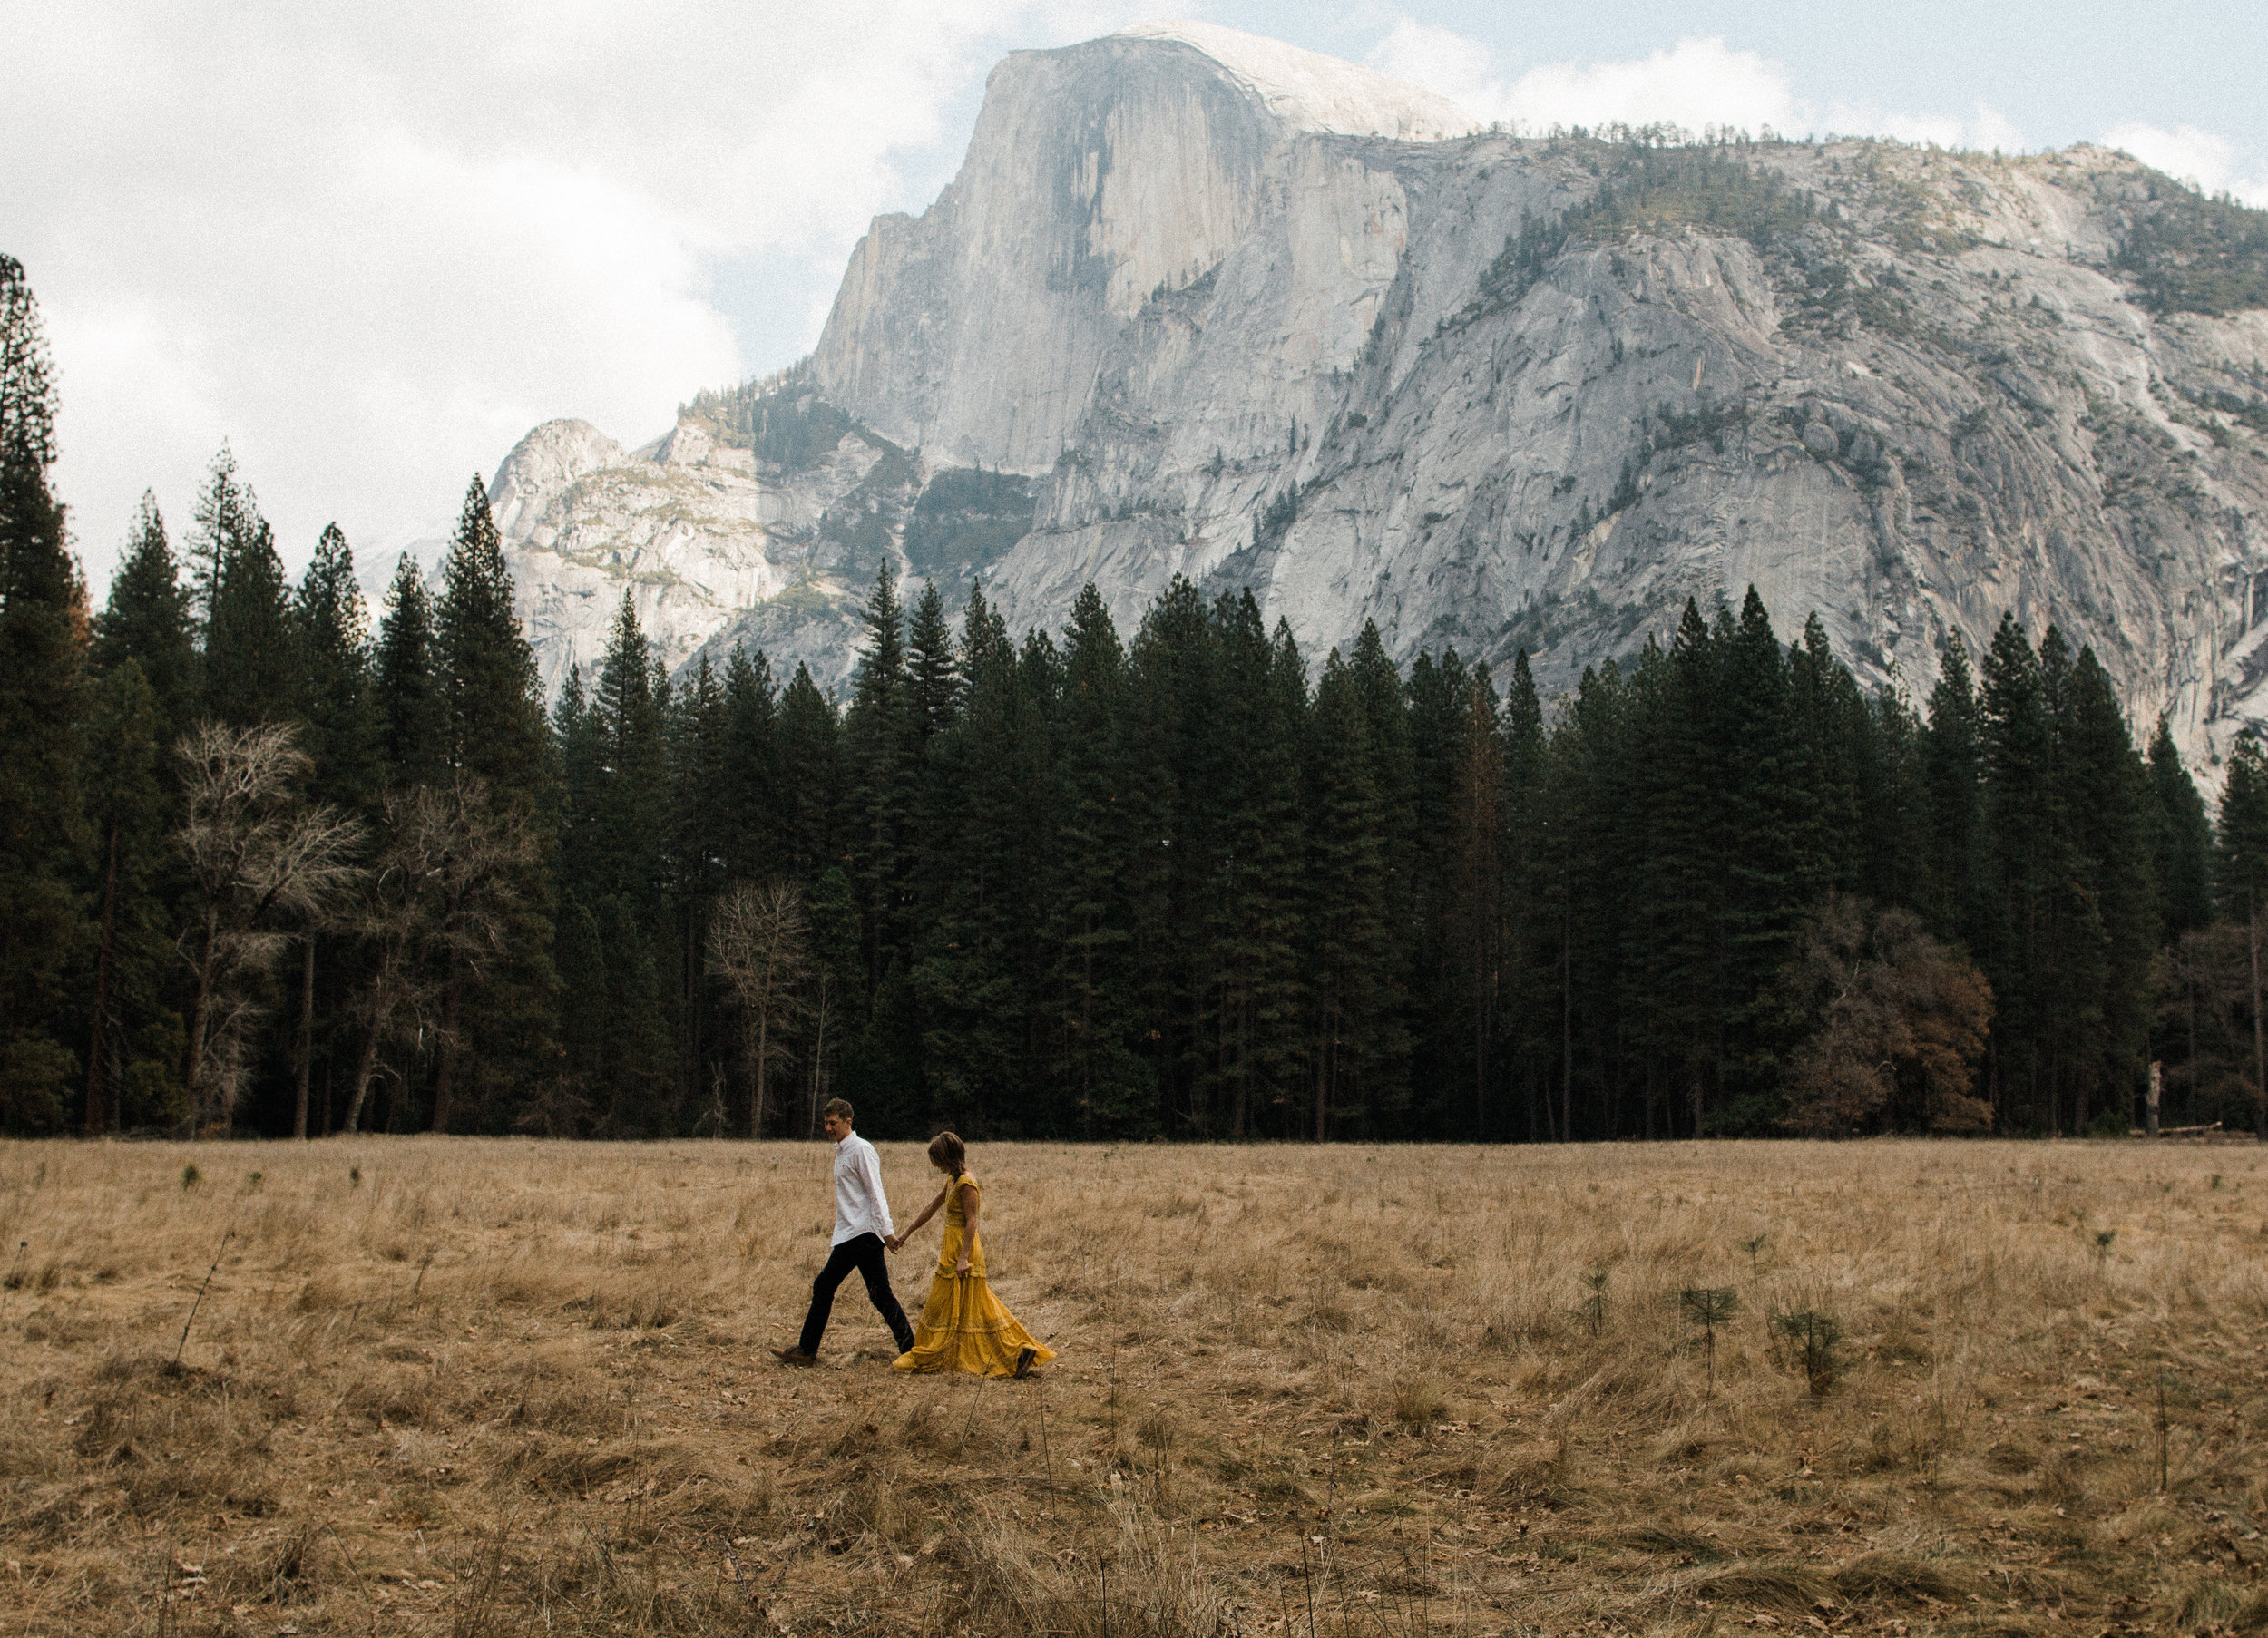 ENTER FOR A CHANCE TO WIN A FULL DAY COVERAGE FOR YOUR ADVENTURE ELOPEMENT TO ANYWHERE IN THE WORLD!